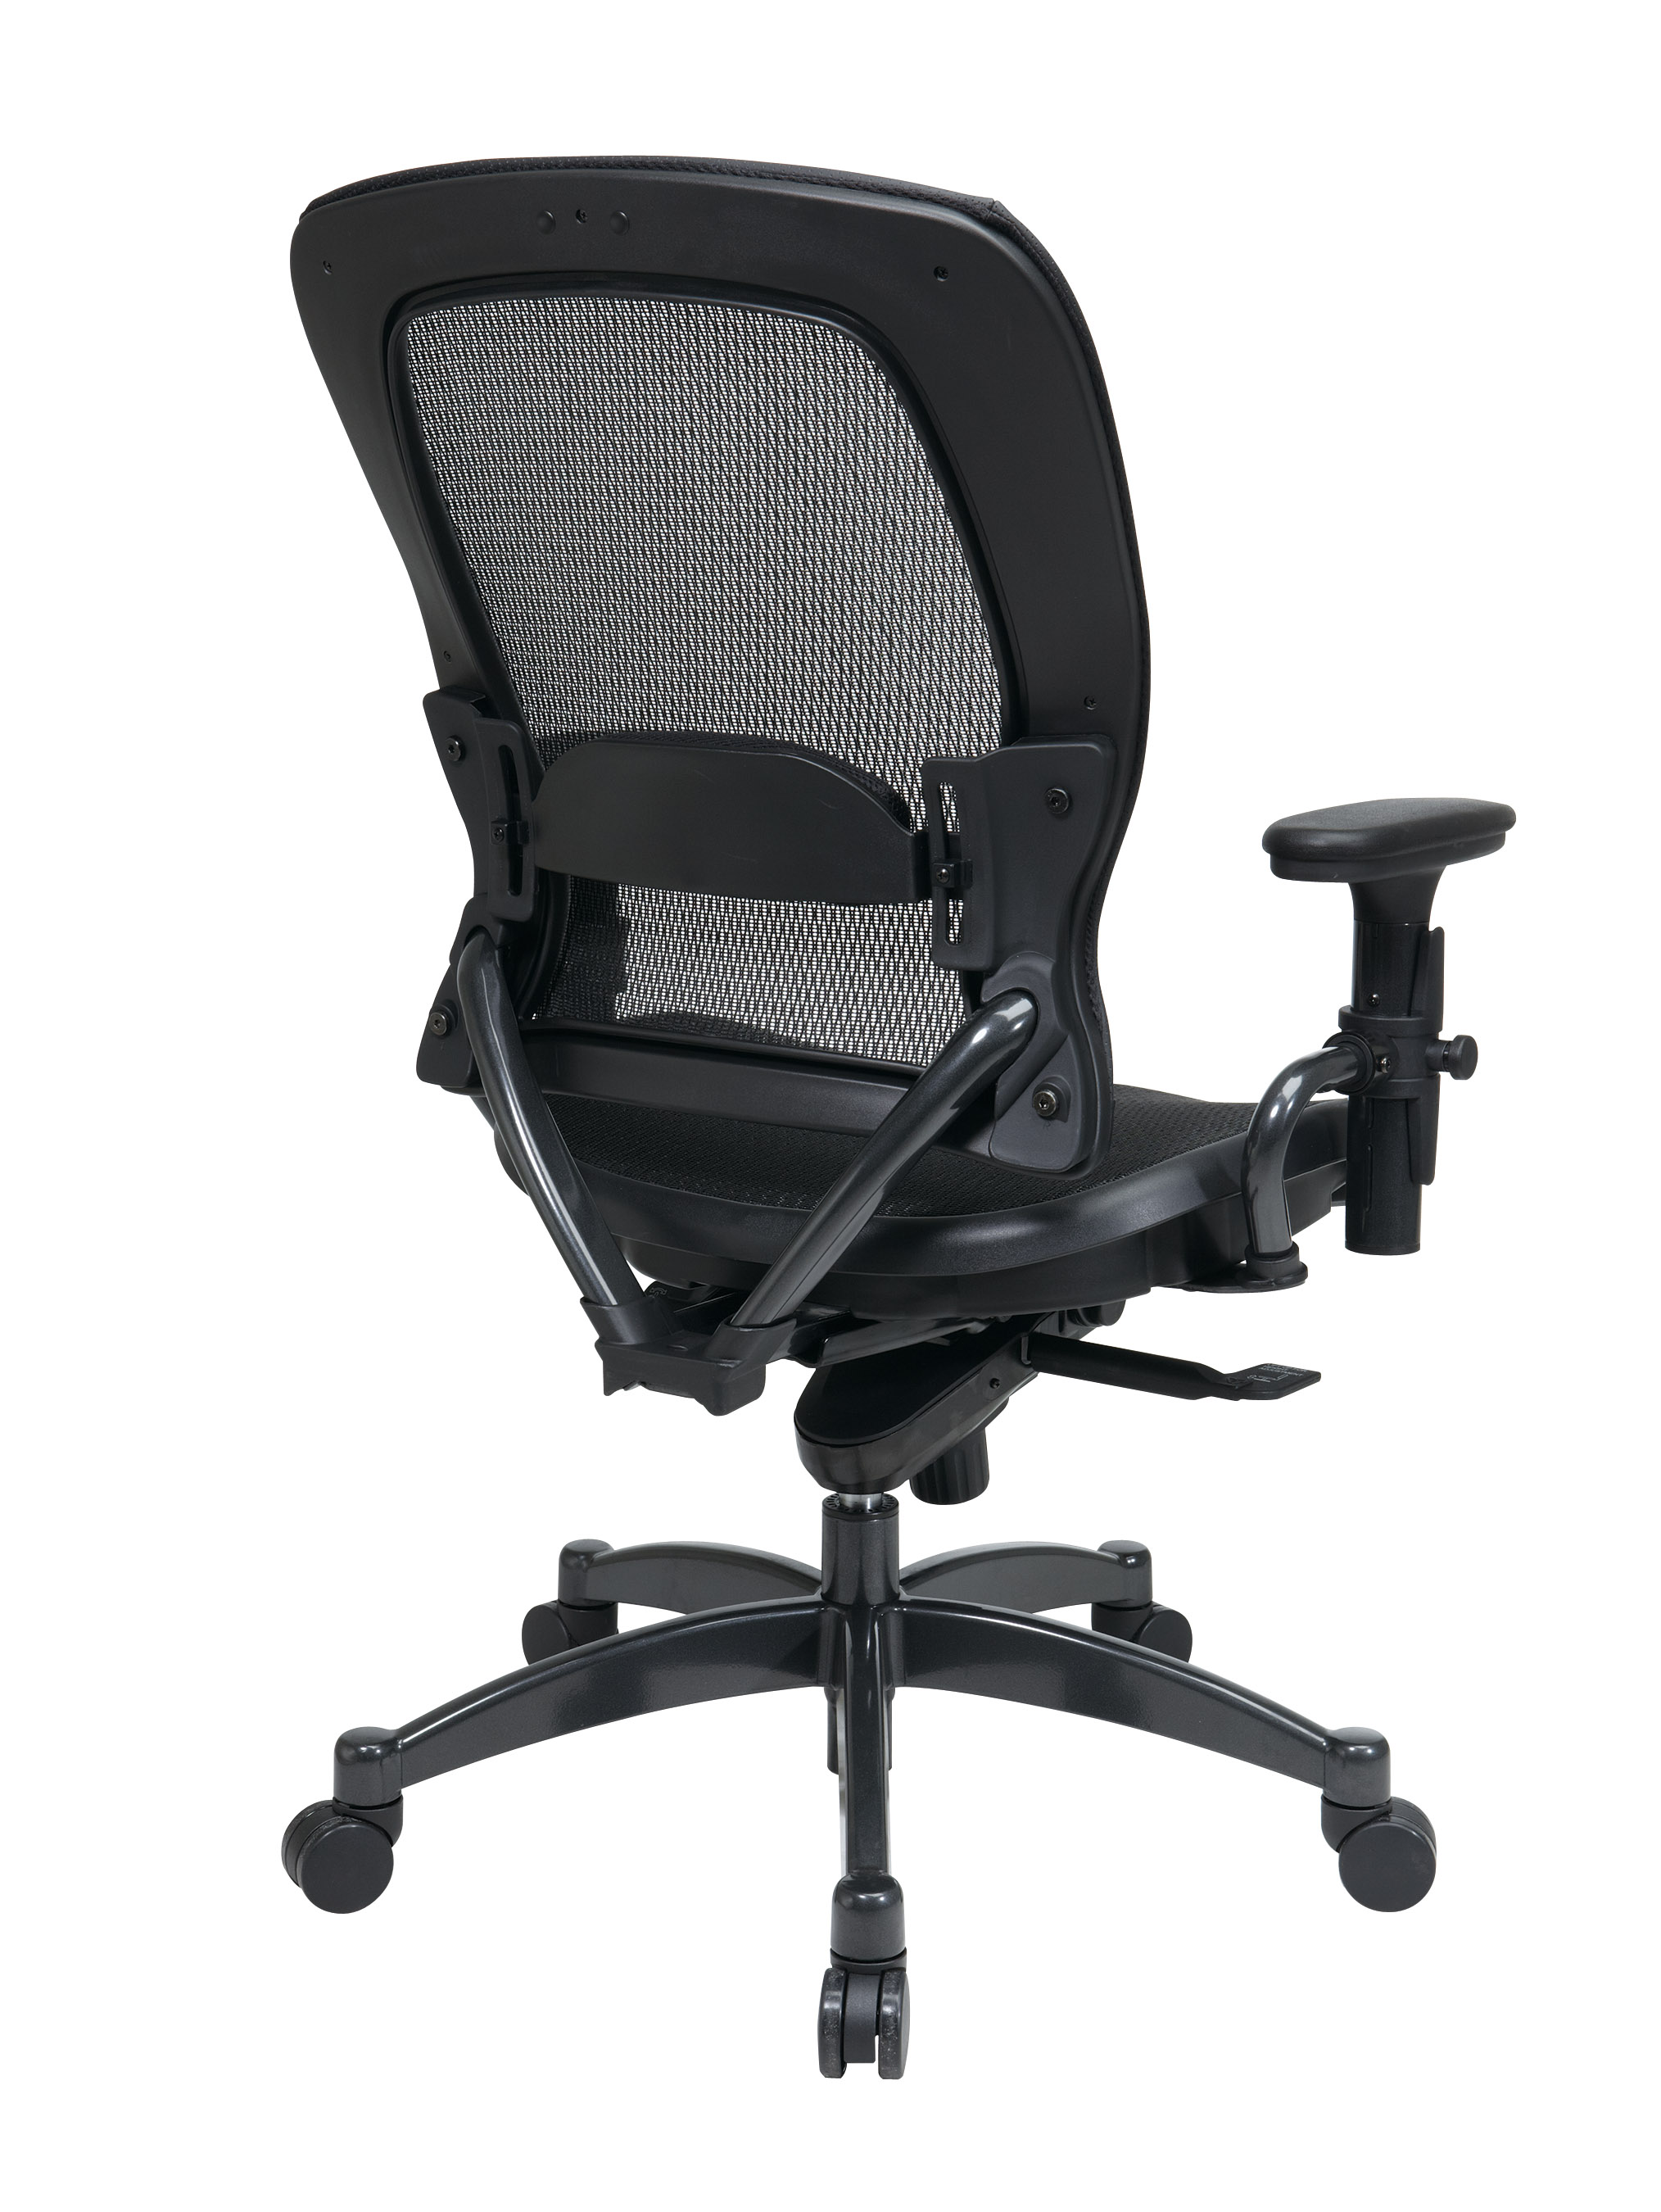 Black-Breathable-Mesh-Chair-Back